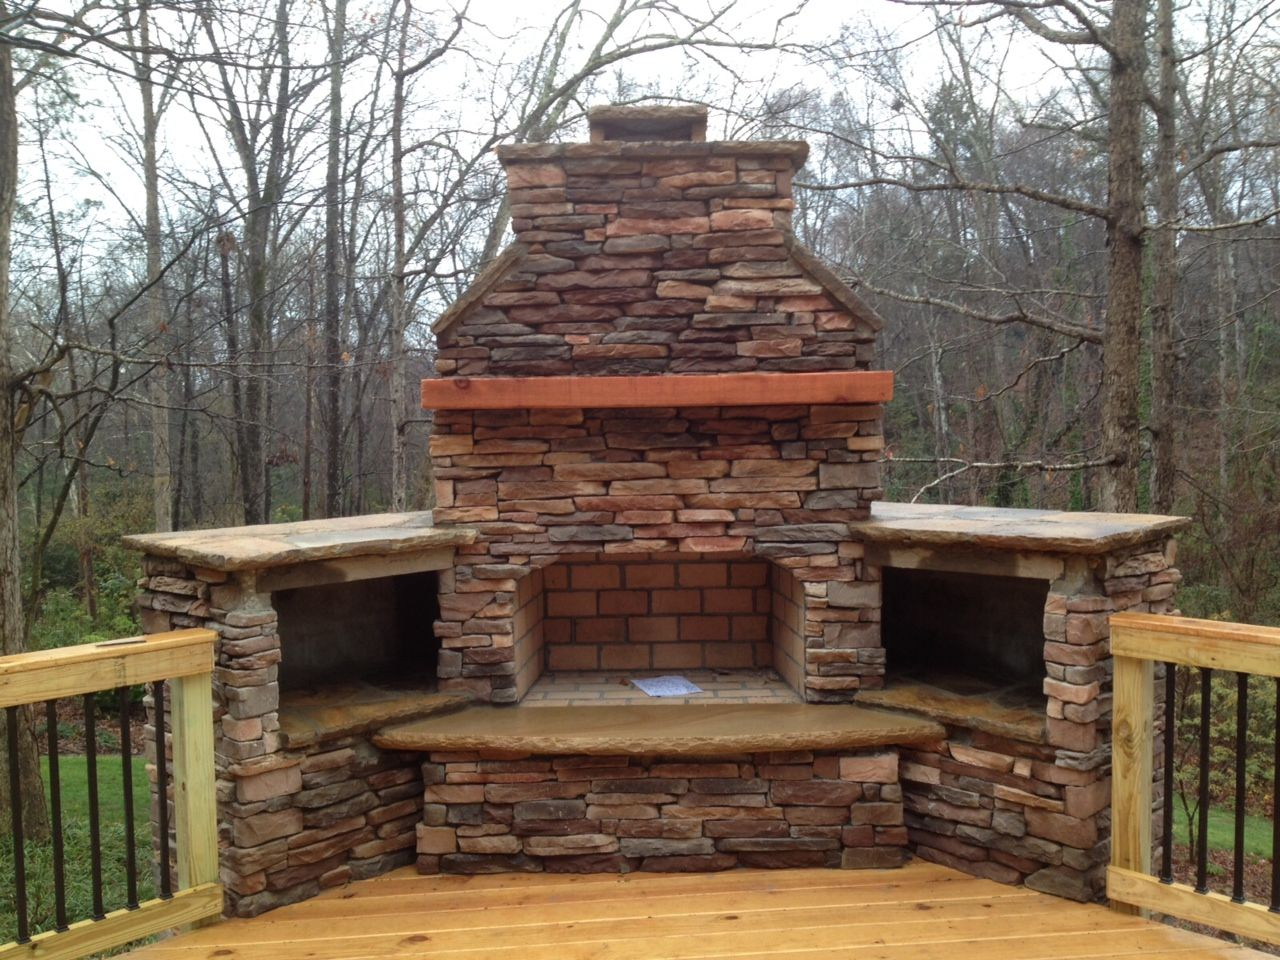 design hgtv fireplaces pits chimney spaces ideas diy and fire outdoor fireplace